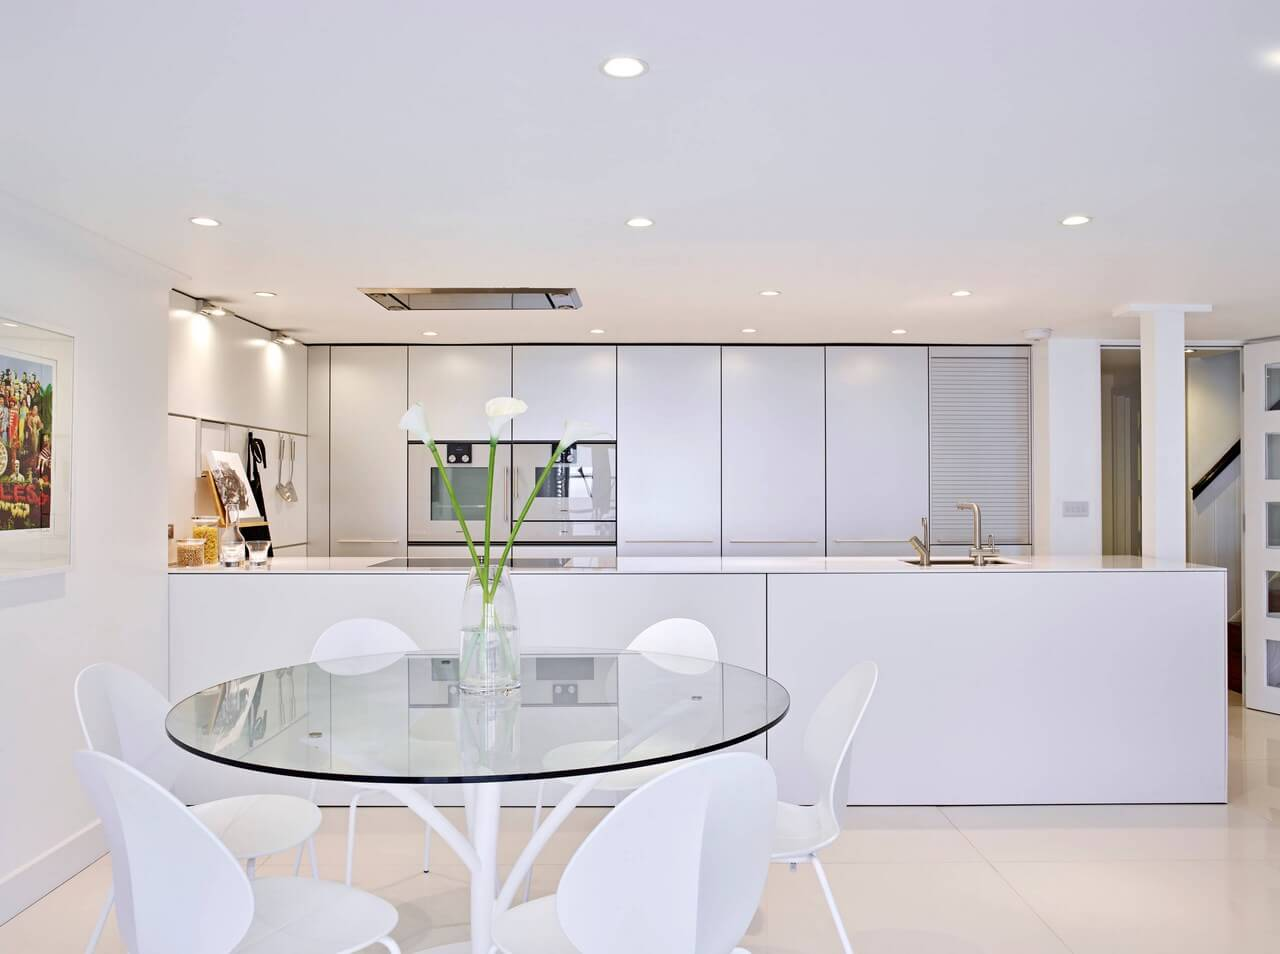 Gorgeous kitchen with sleek cabinetry and white appliances along with a round glass top dining table surrounded with contemporary chairs.